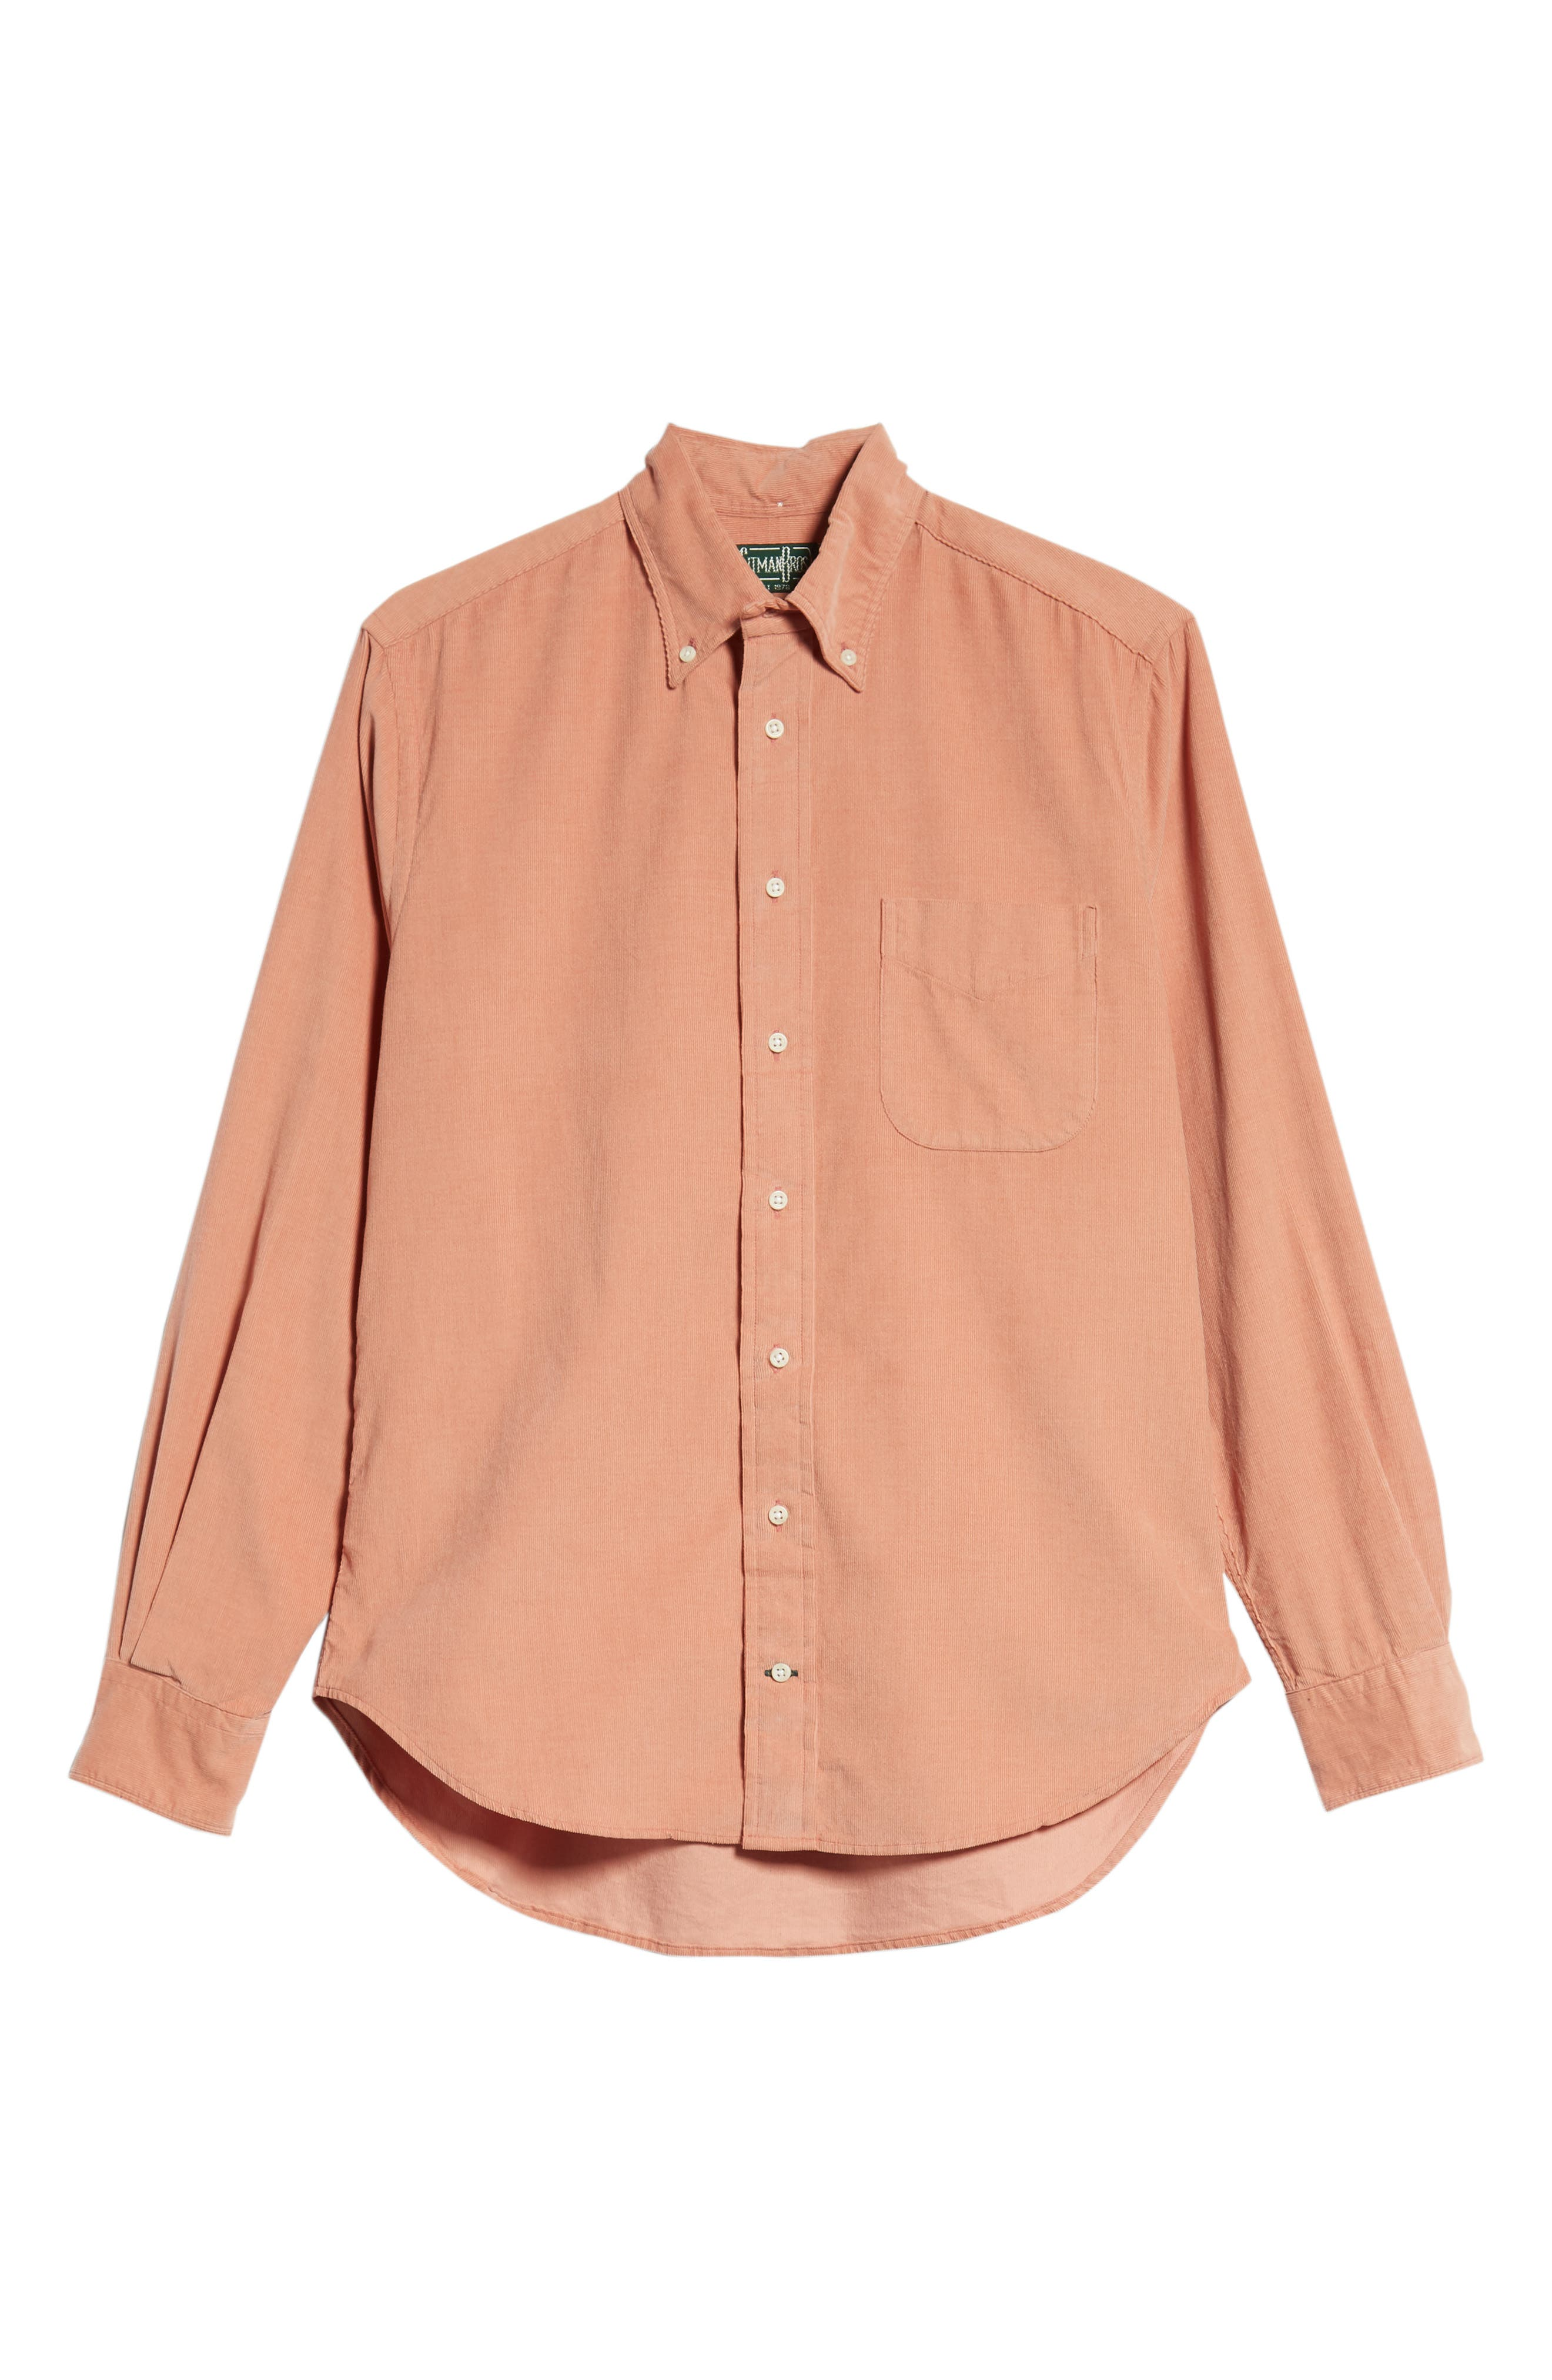 Regular Fit Corduroy Shirt,                             Alternate thumbnail 5, color,                             PINK